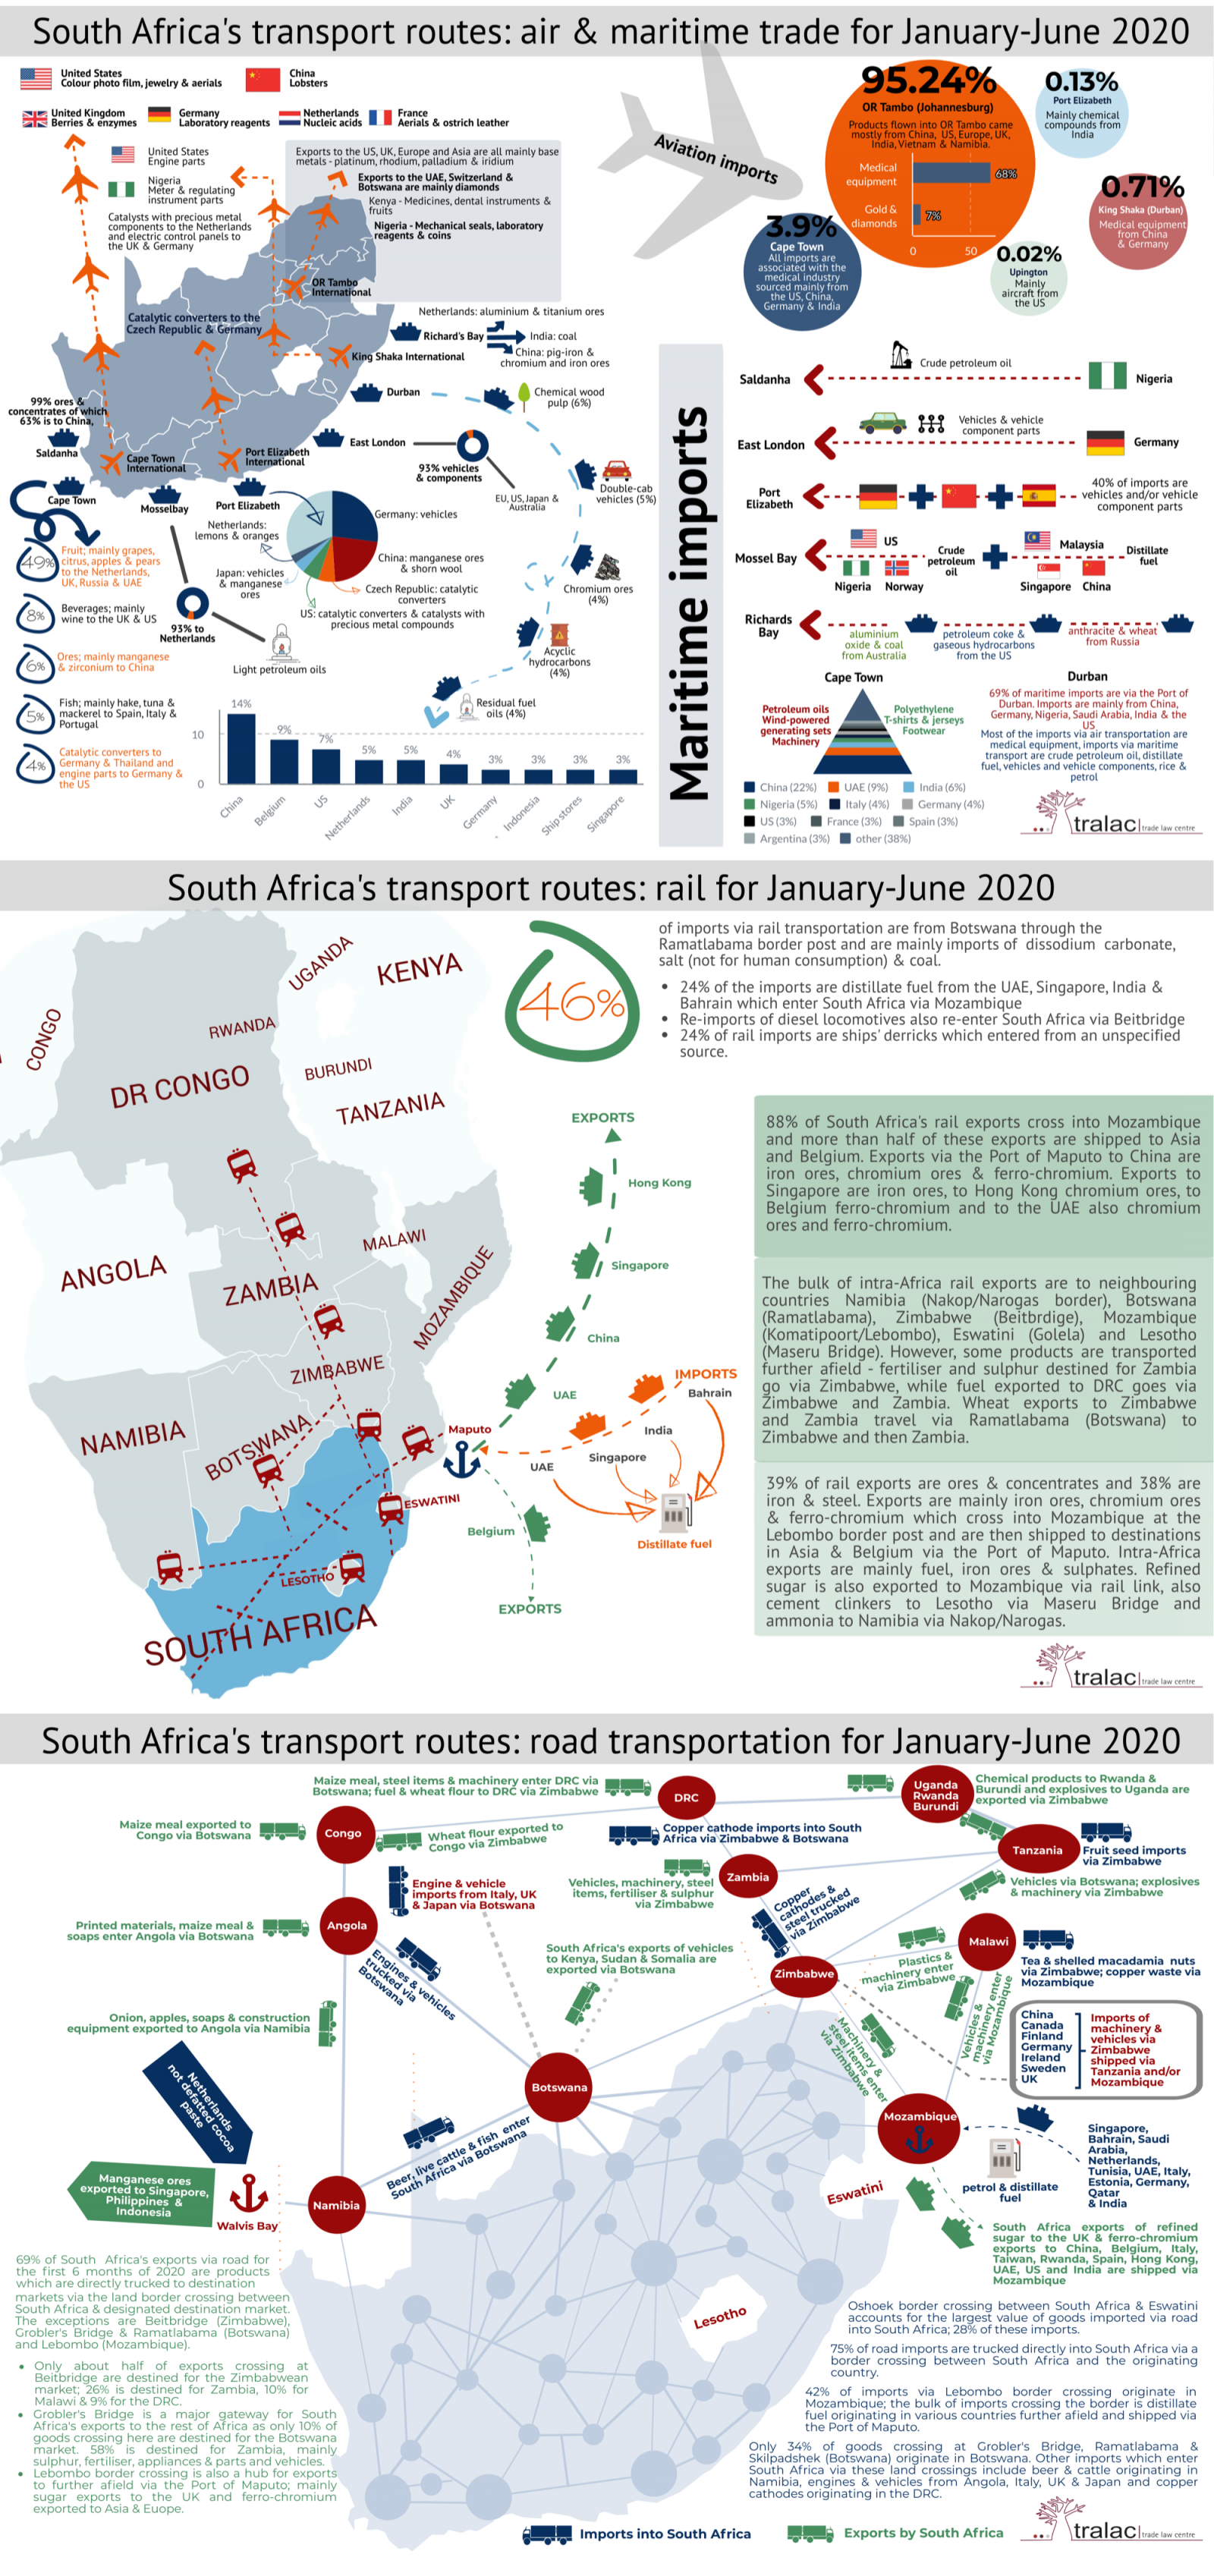 South Africa's transport routes: trade by air, maritime shipping, rail and road for January to June 2020